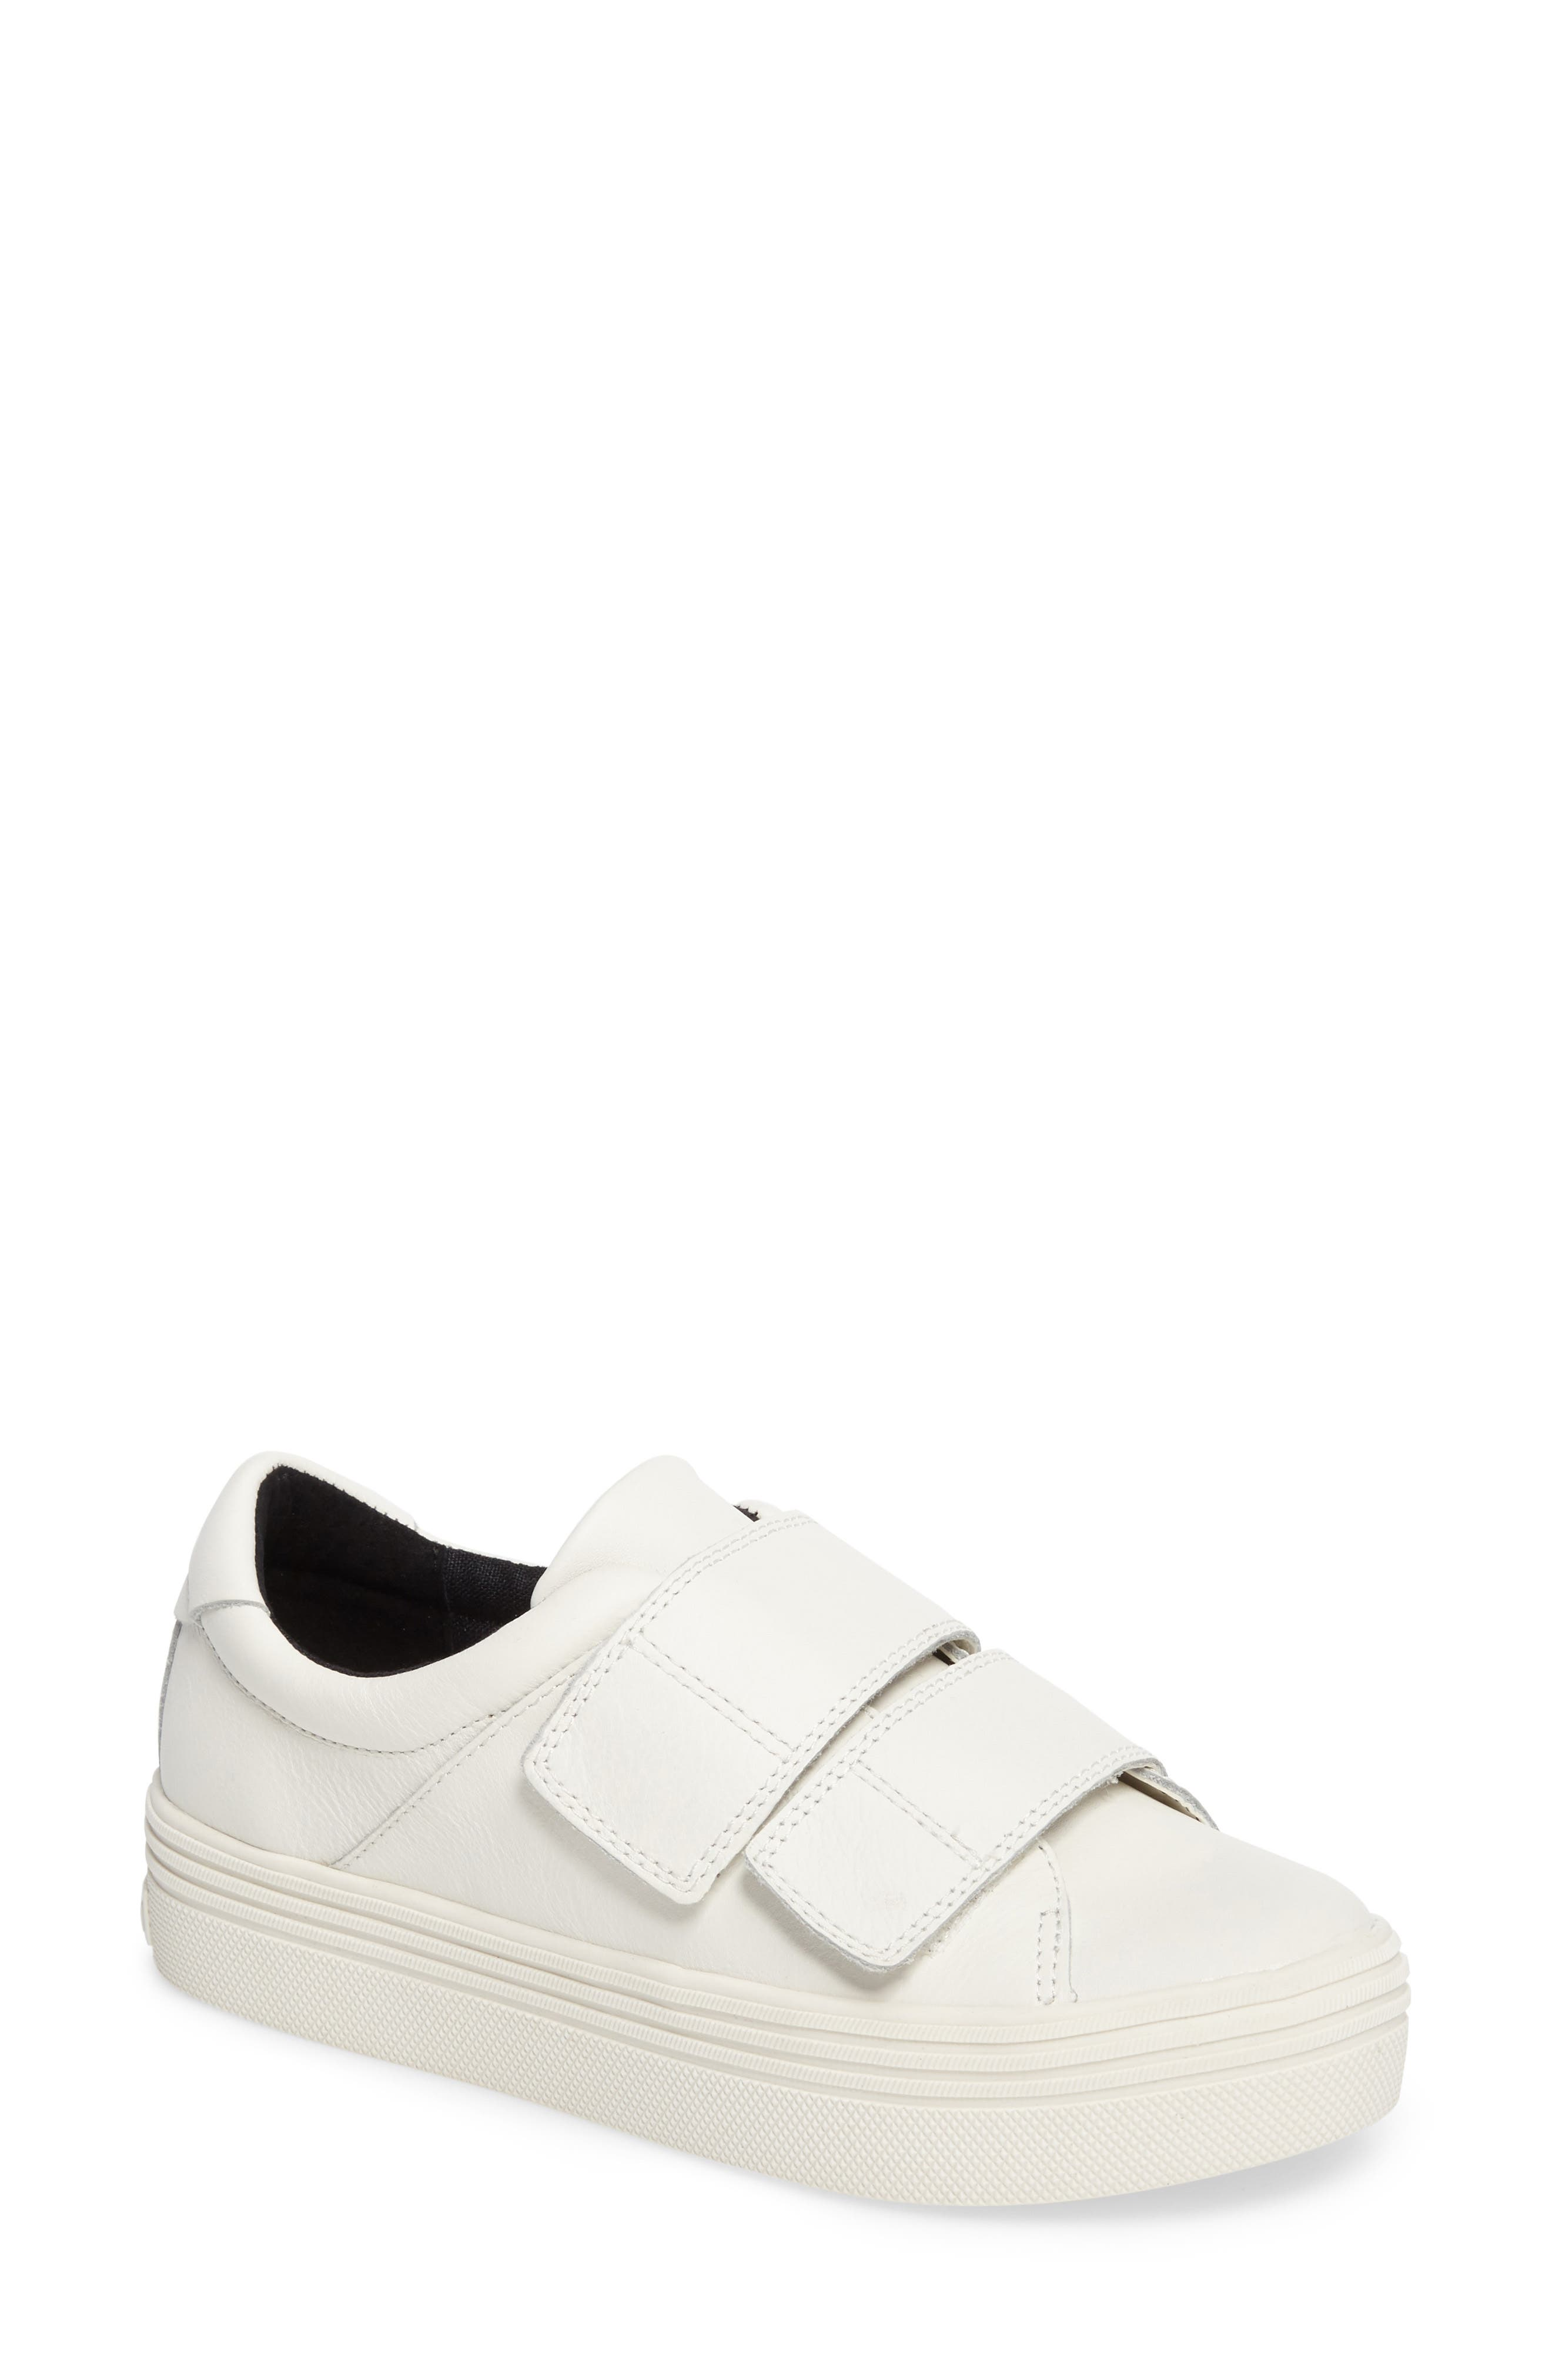 Tina Platform Sneaker,                         Main,                         color, White Leather